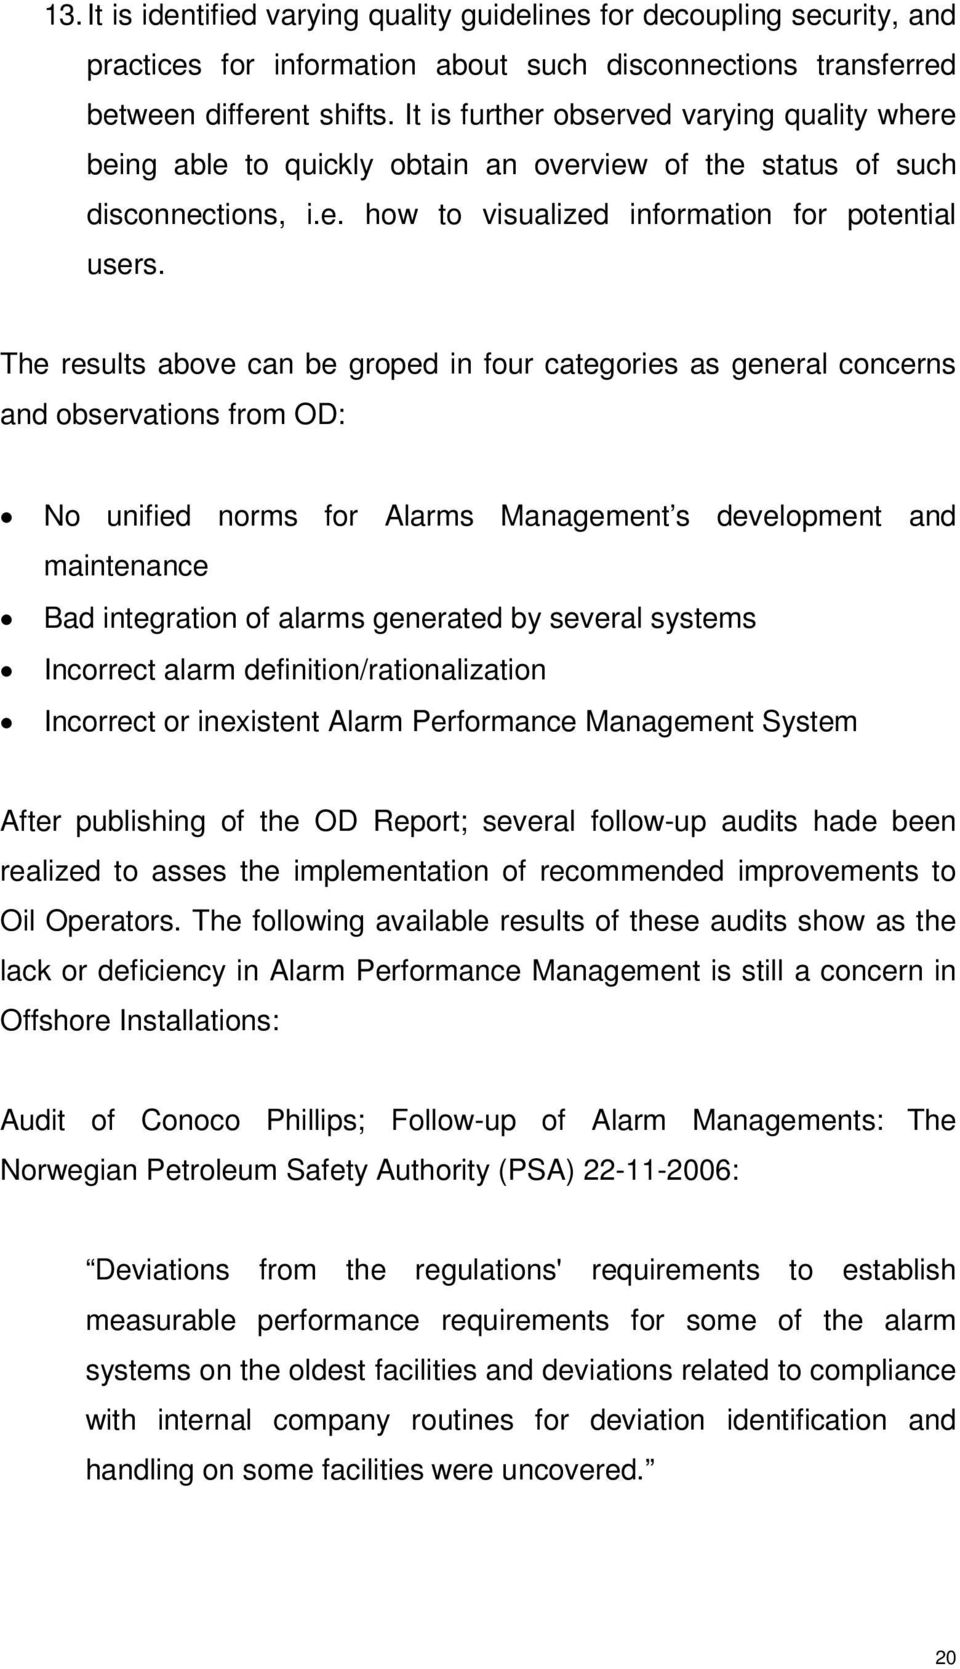 The results above can be groped in four categories as general concerns and observations from OD: No unified norms for Alarms Management s development and maintenance Bad integration of alarms